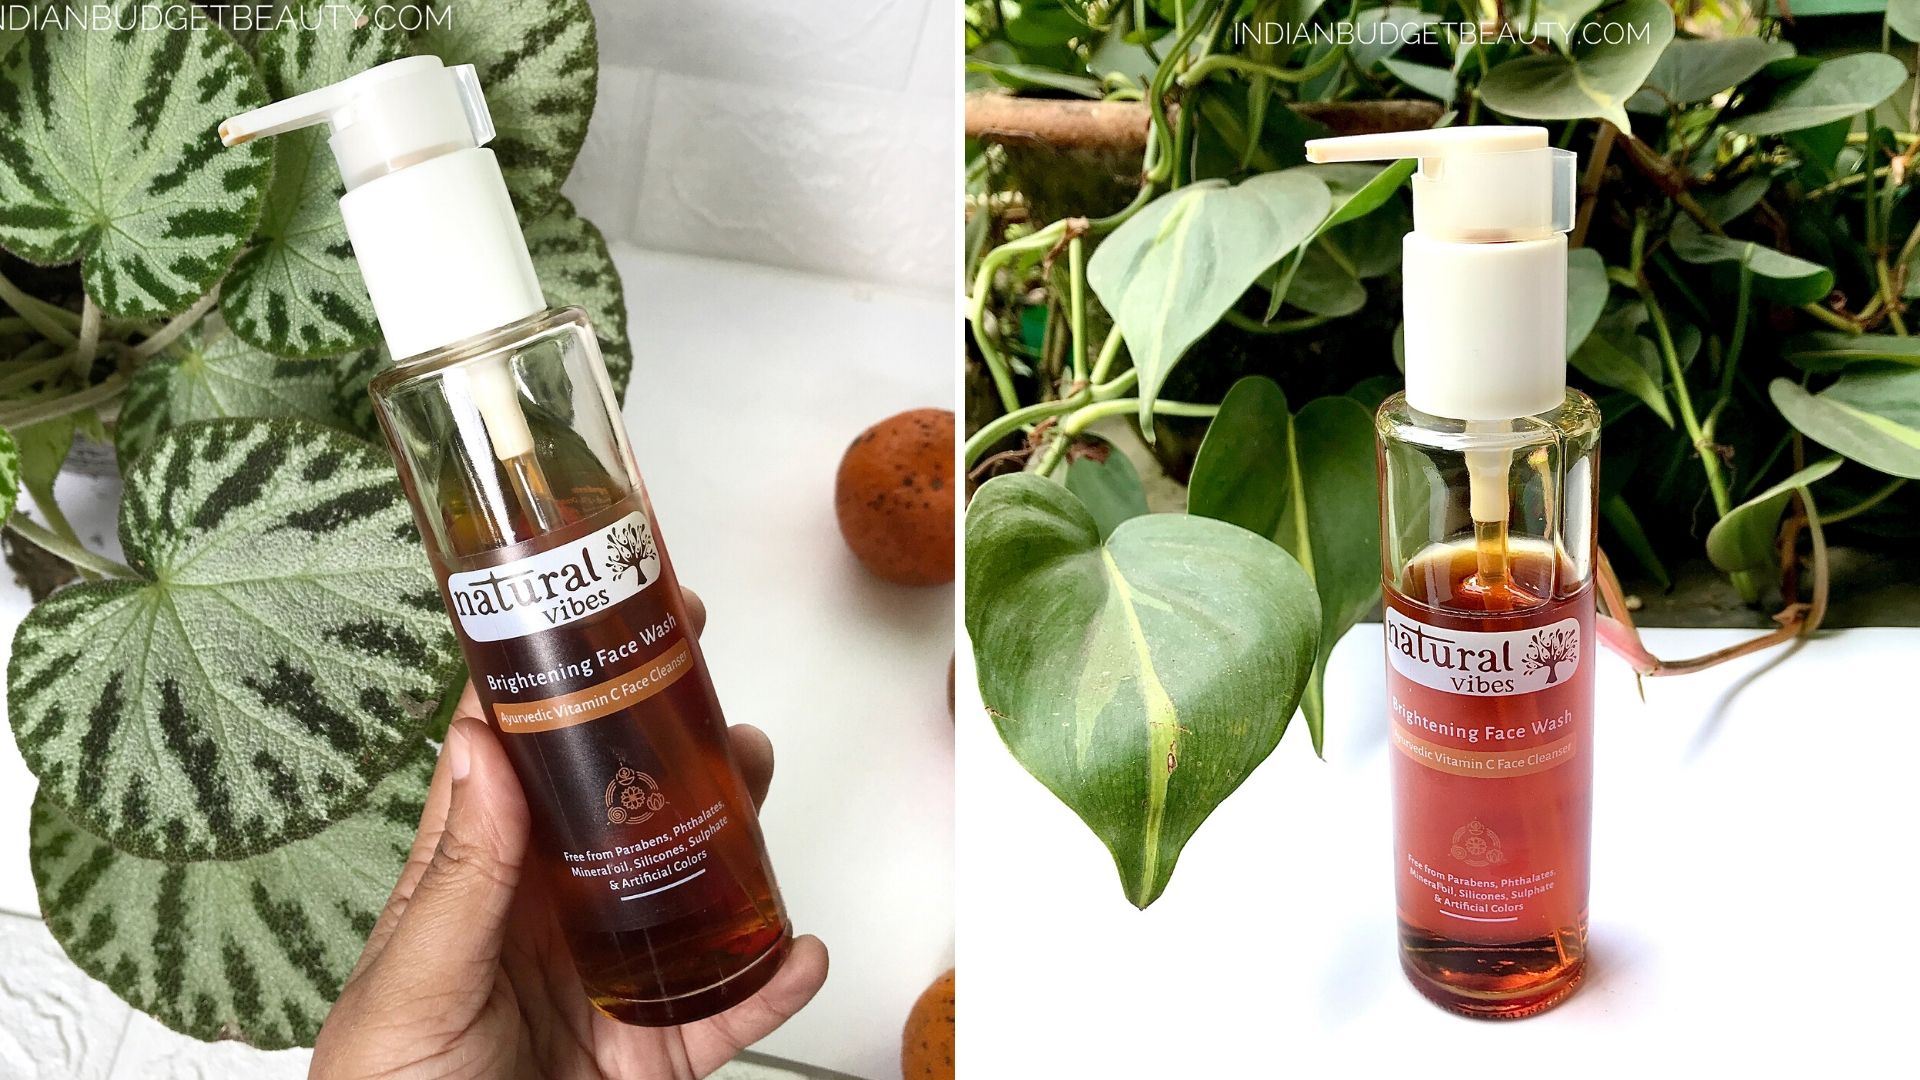 NATURAL VIBES VITAMIN C BRIGHTENING FACE WASH REVIEW